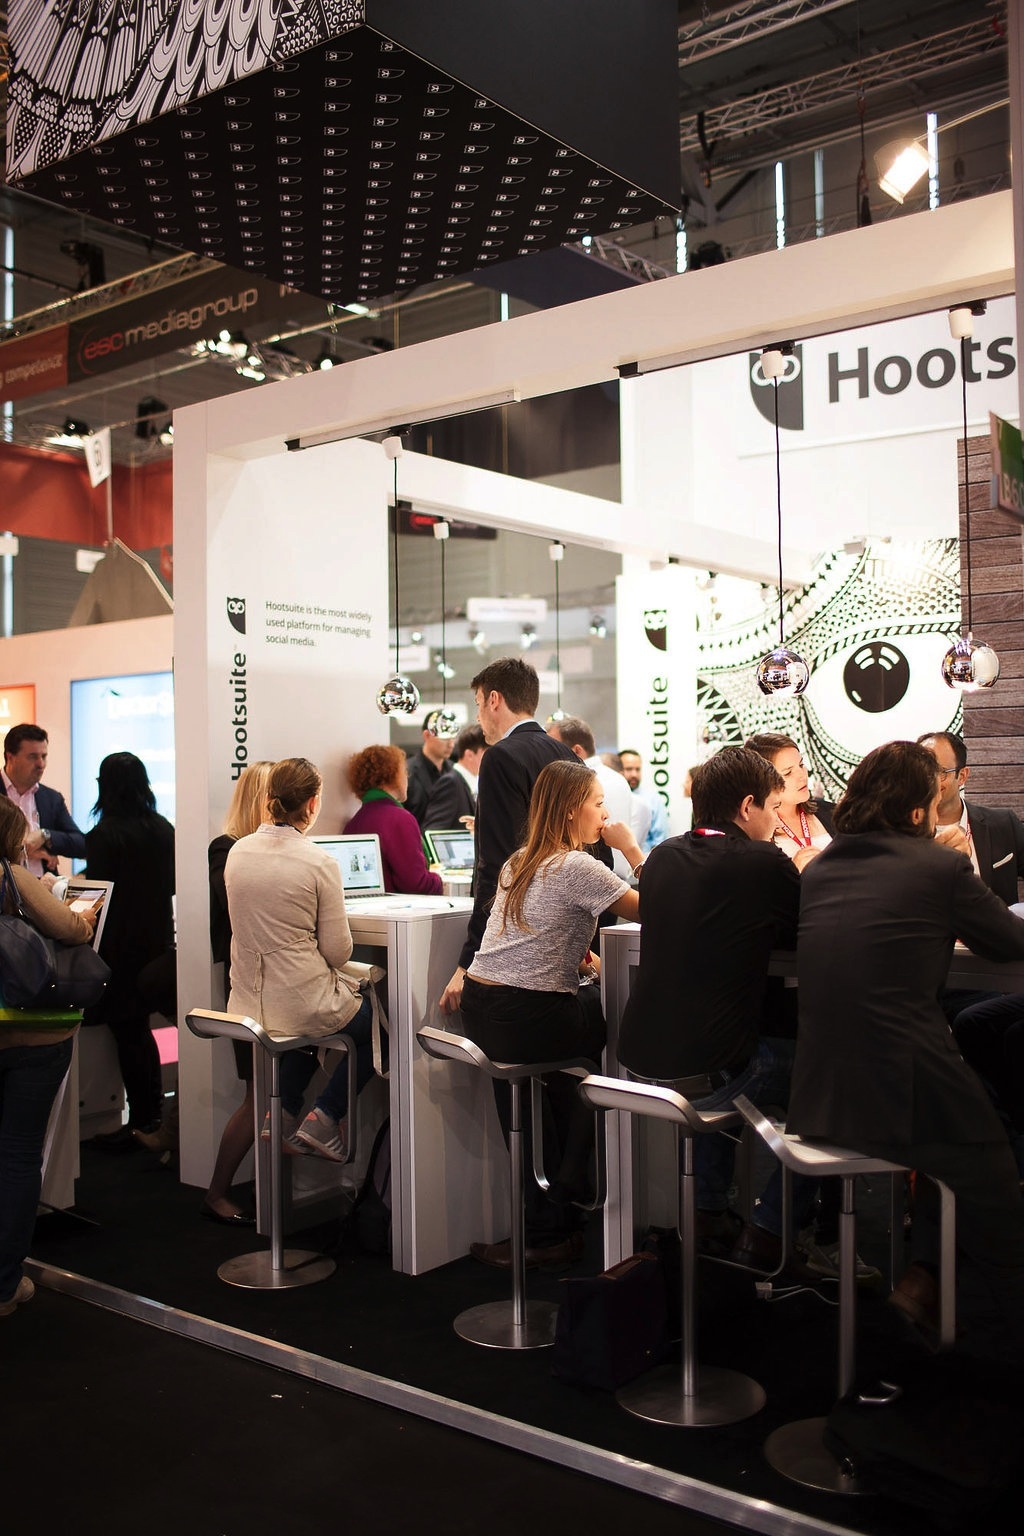 hootsuite booth